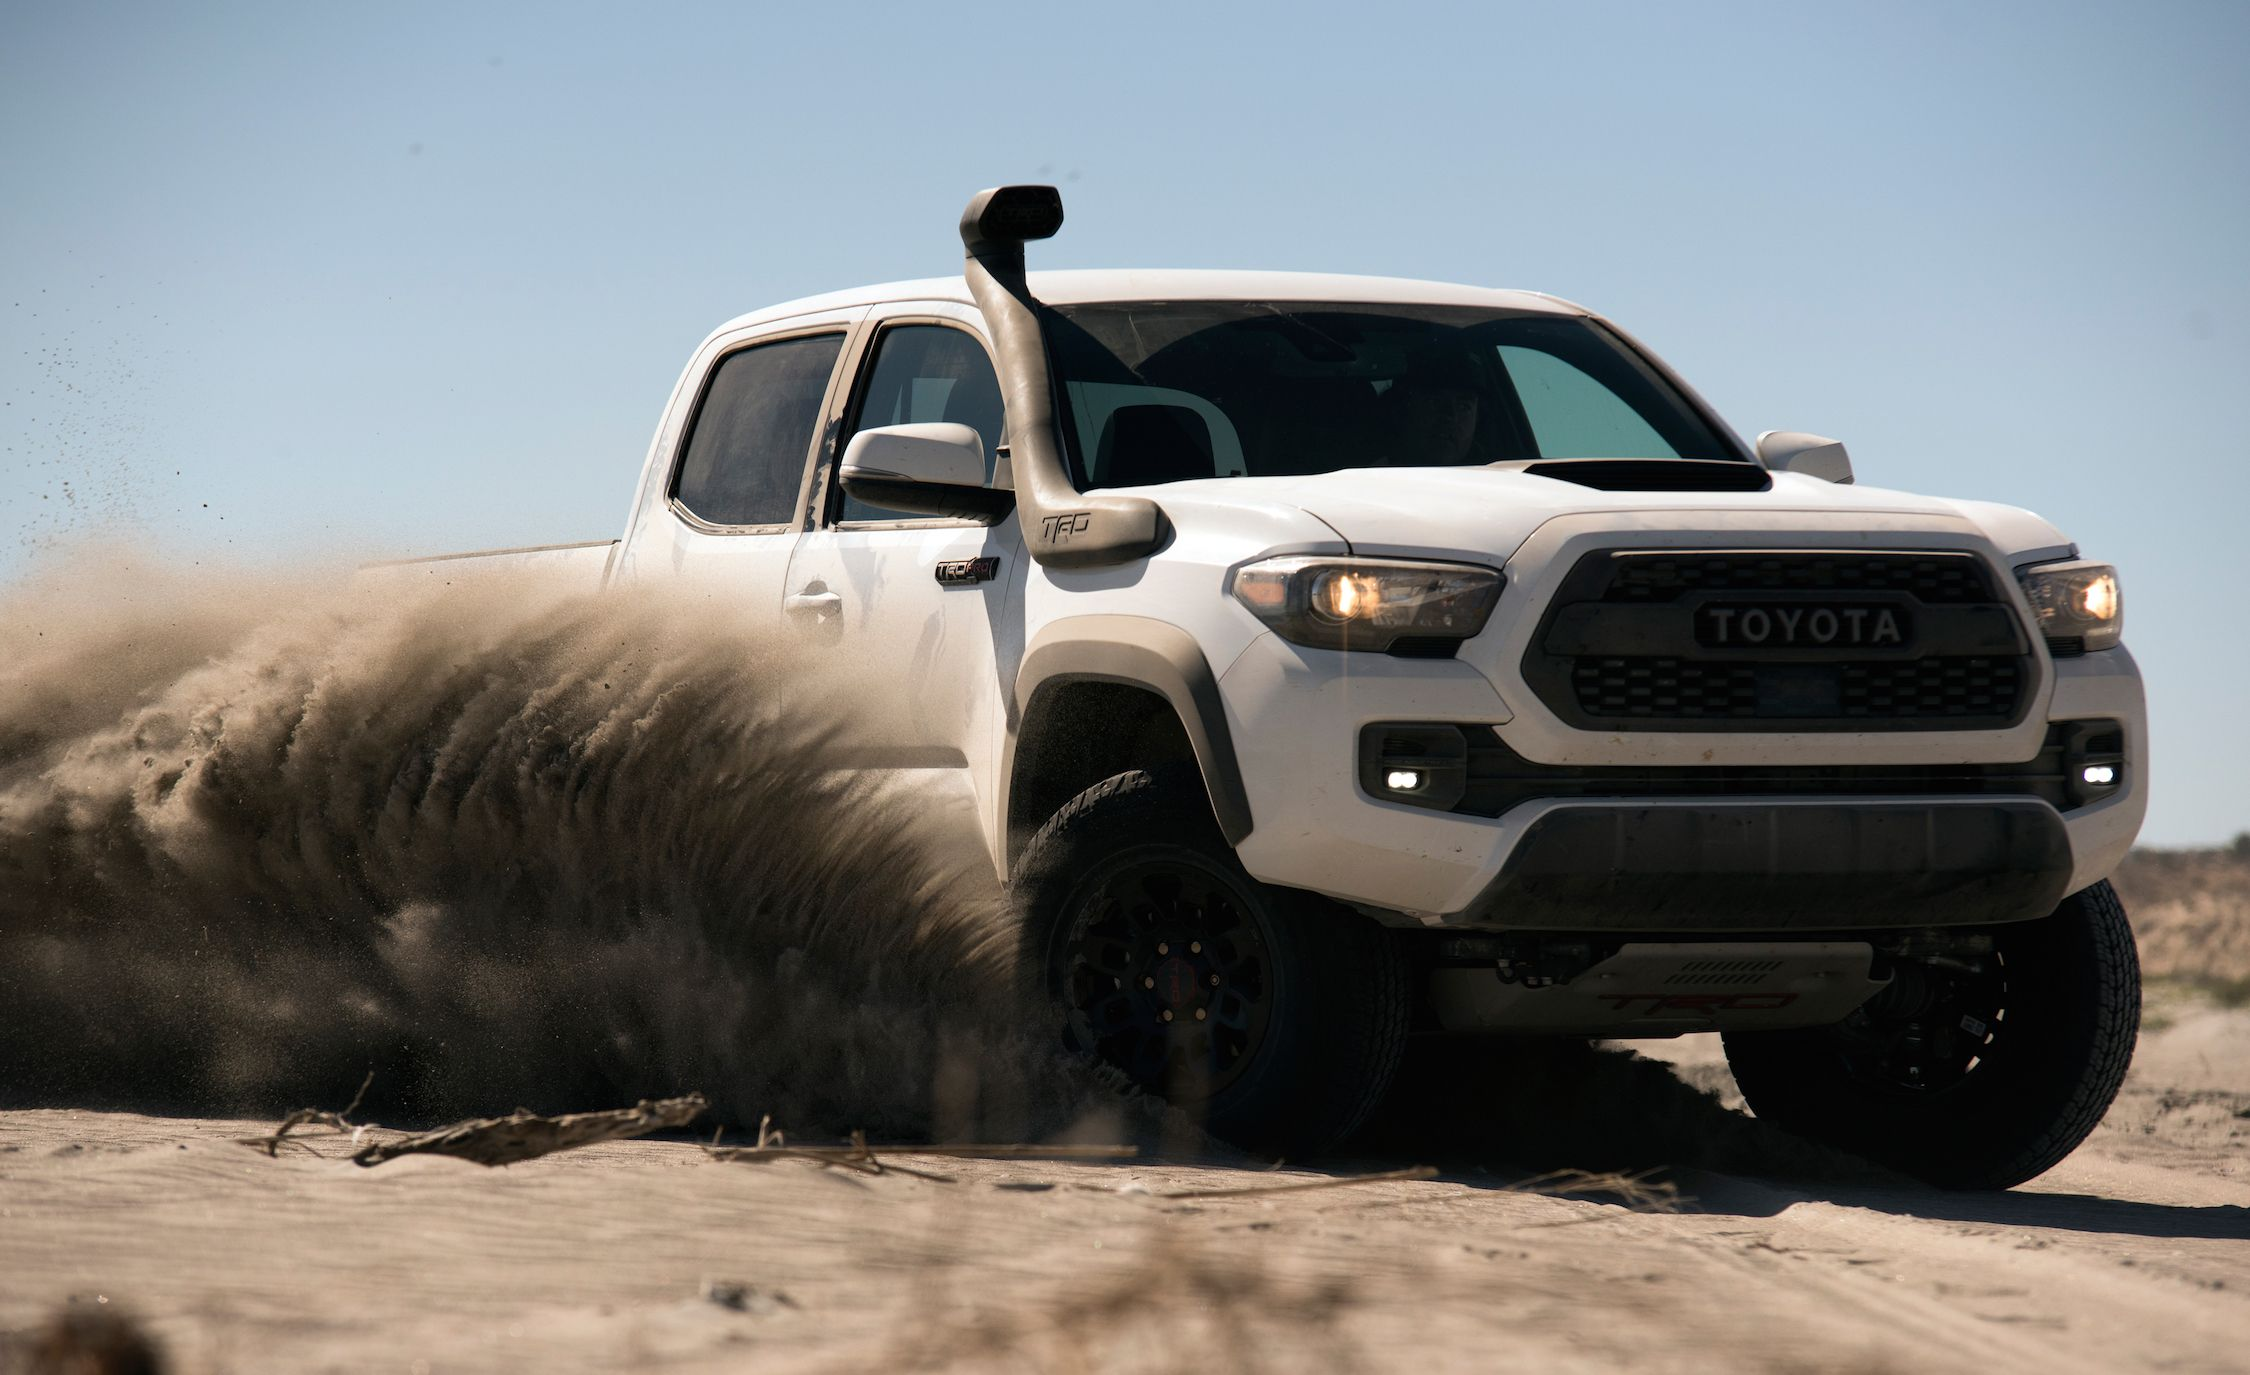 The Toyota Tacoma Pickup's Bad-Ass Off-Road Image Explained